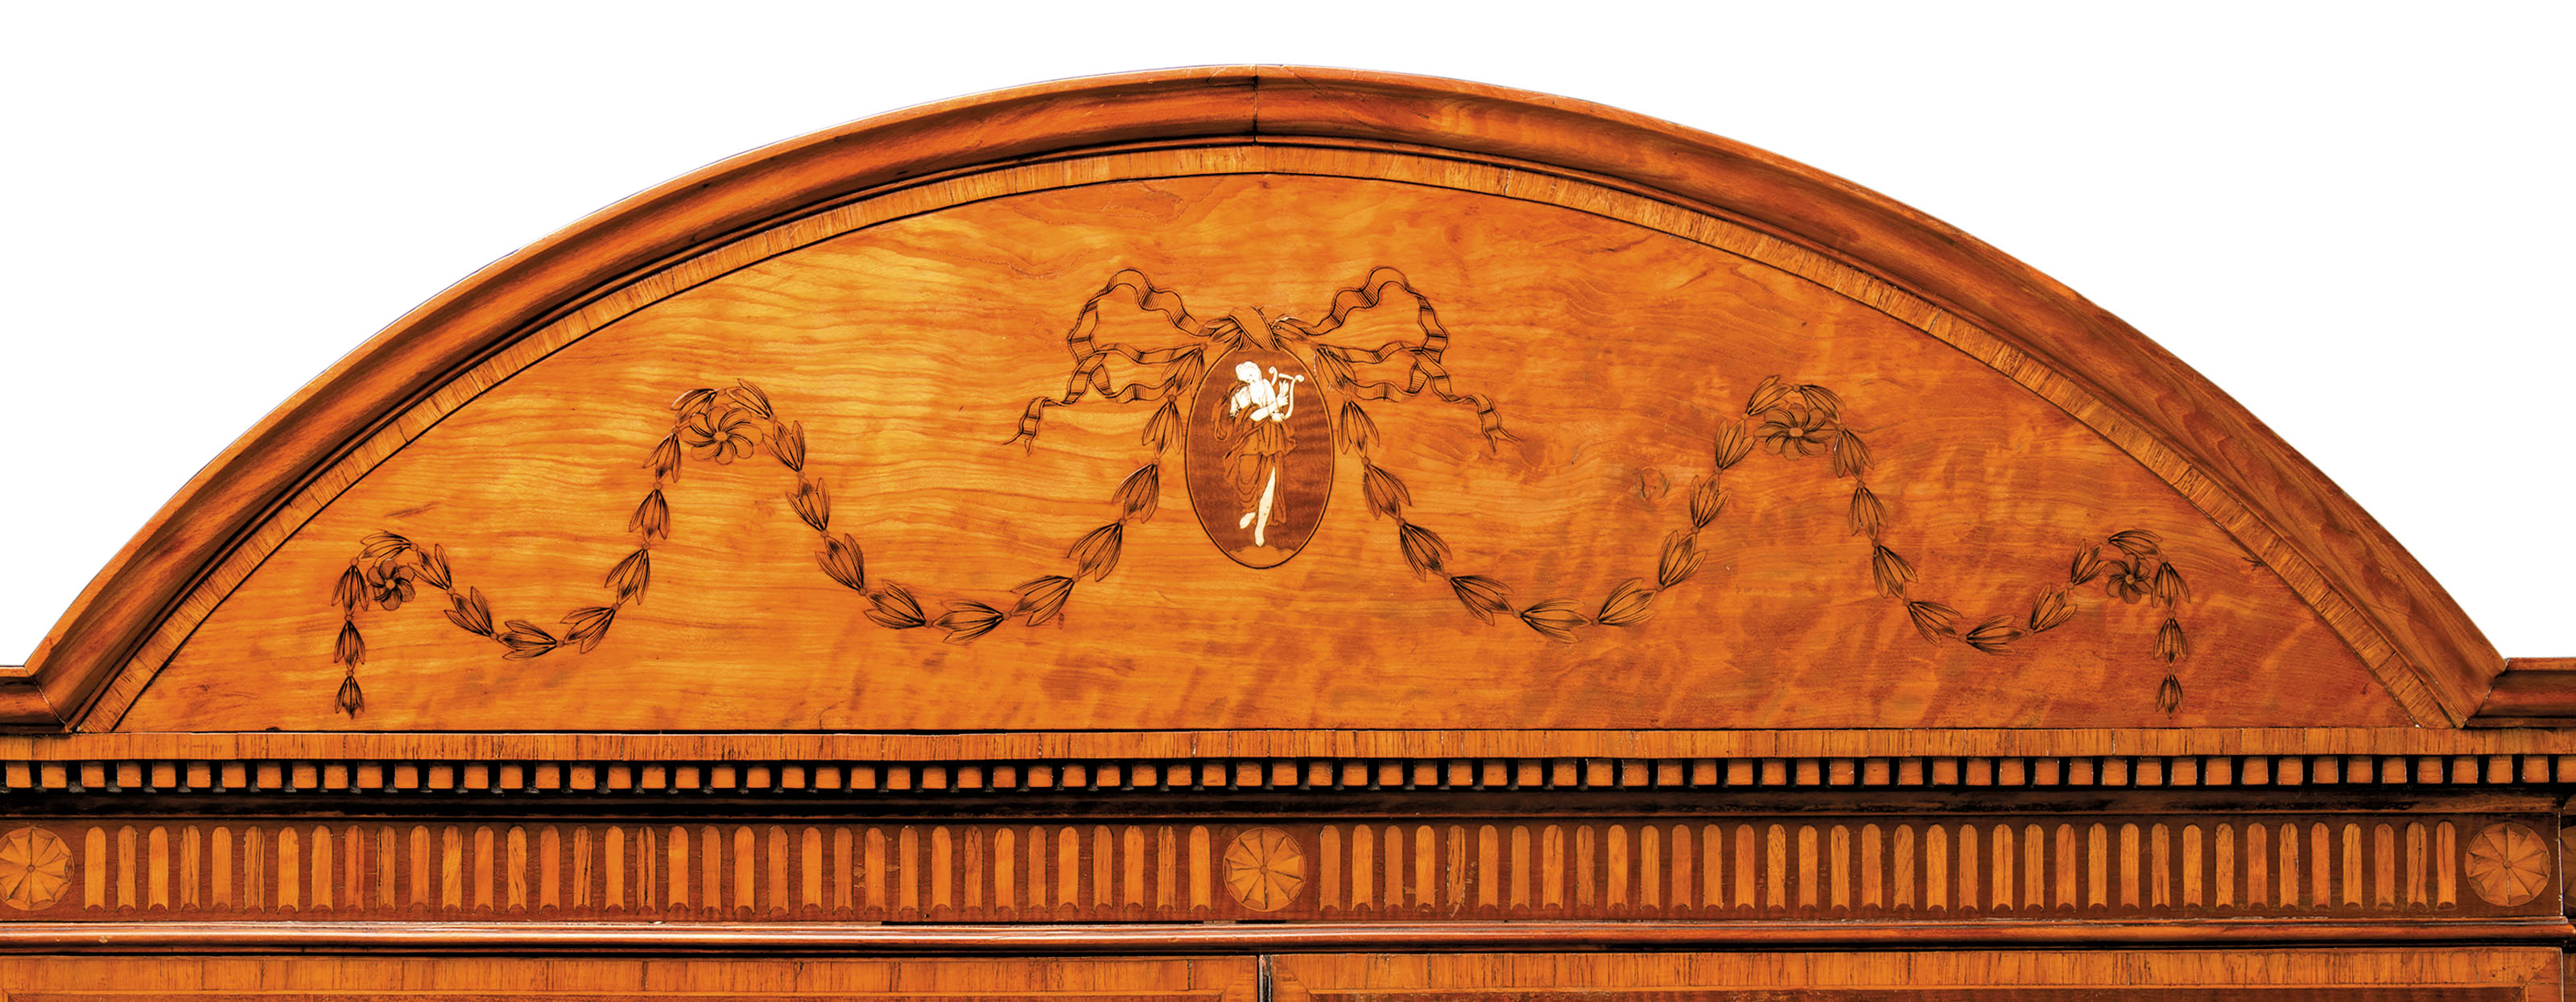 A GEORGE III SATINWOOD, HAREWOOD, BURR-YEW, TULIPWOOD AND MARQUETRY BREAKFRONT BOOKCASE